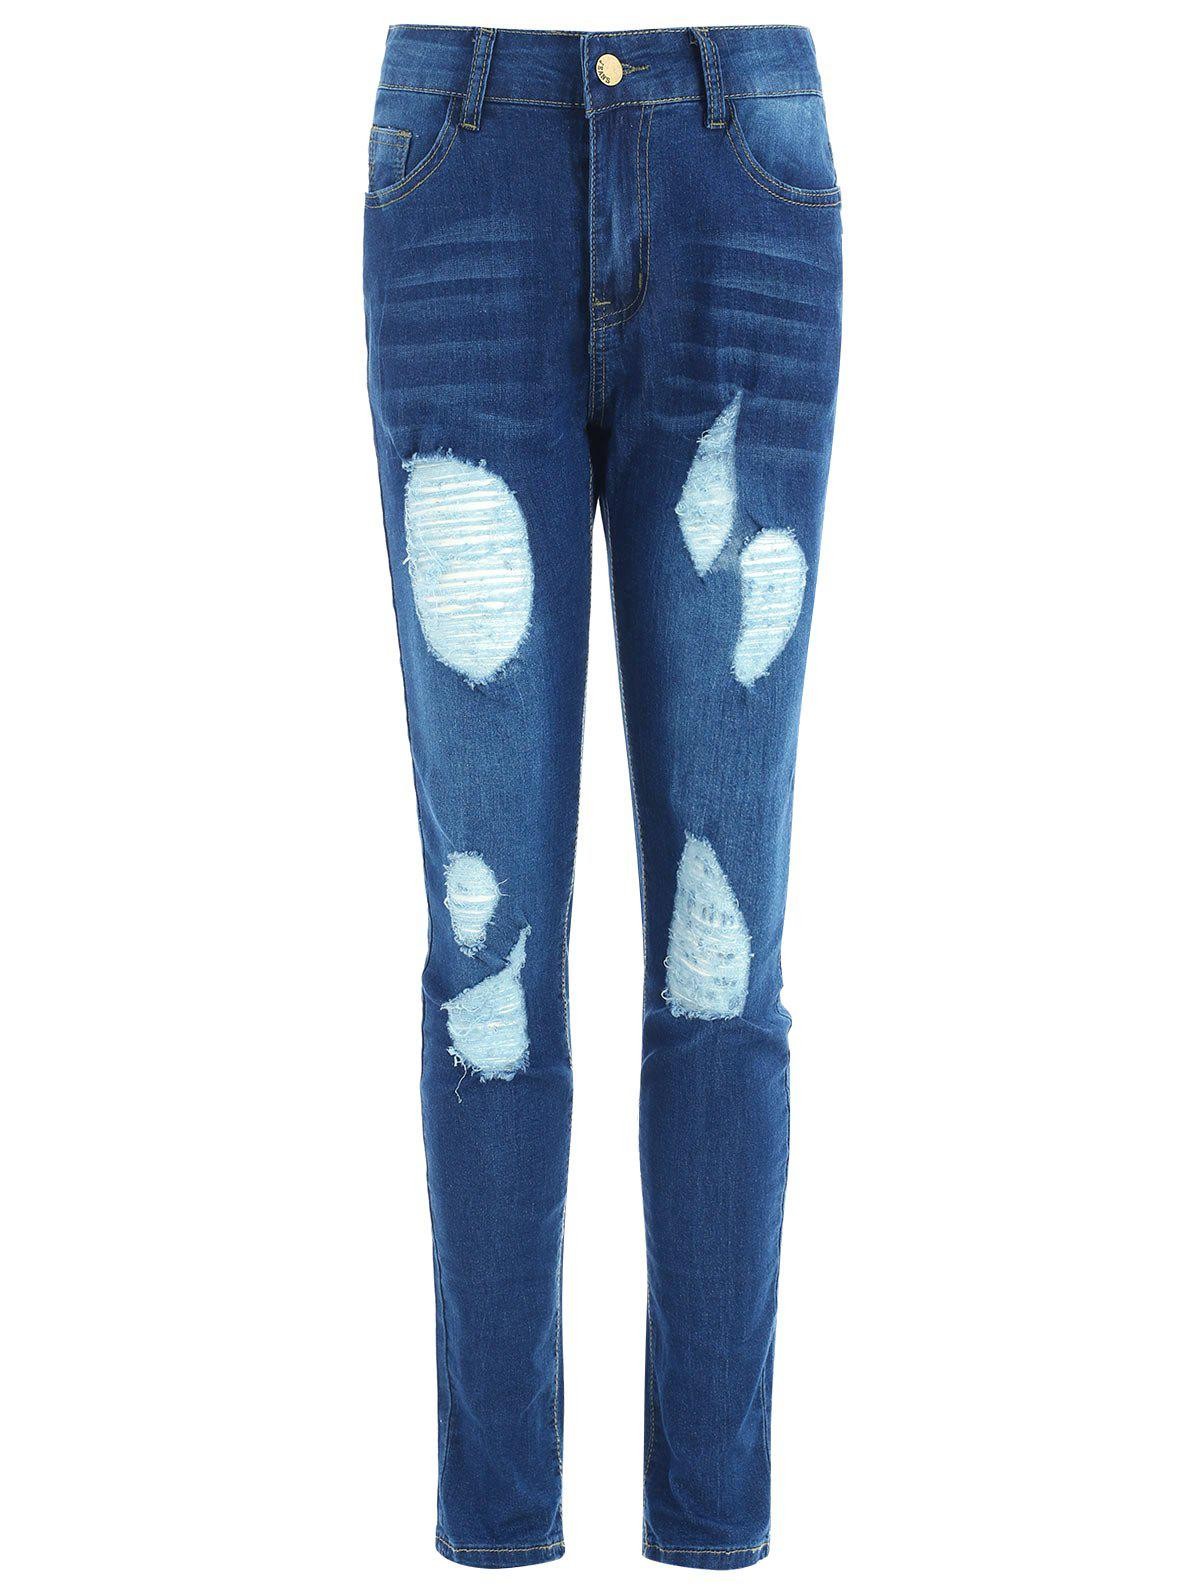 Slim Fit Ripped Jeans with Pockets - JEANS BLUE 2XL